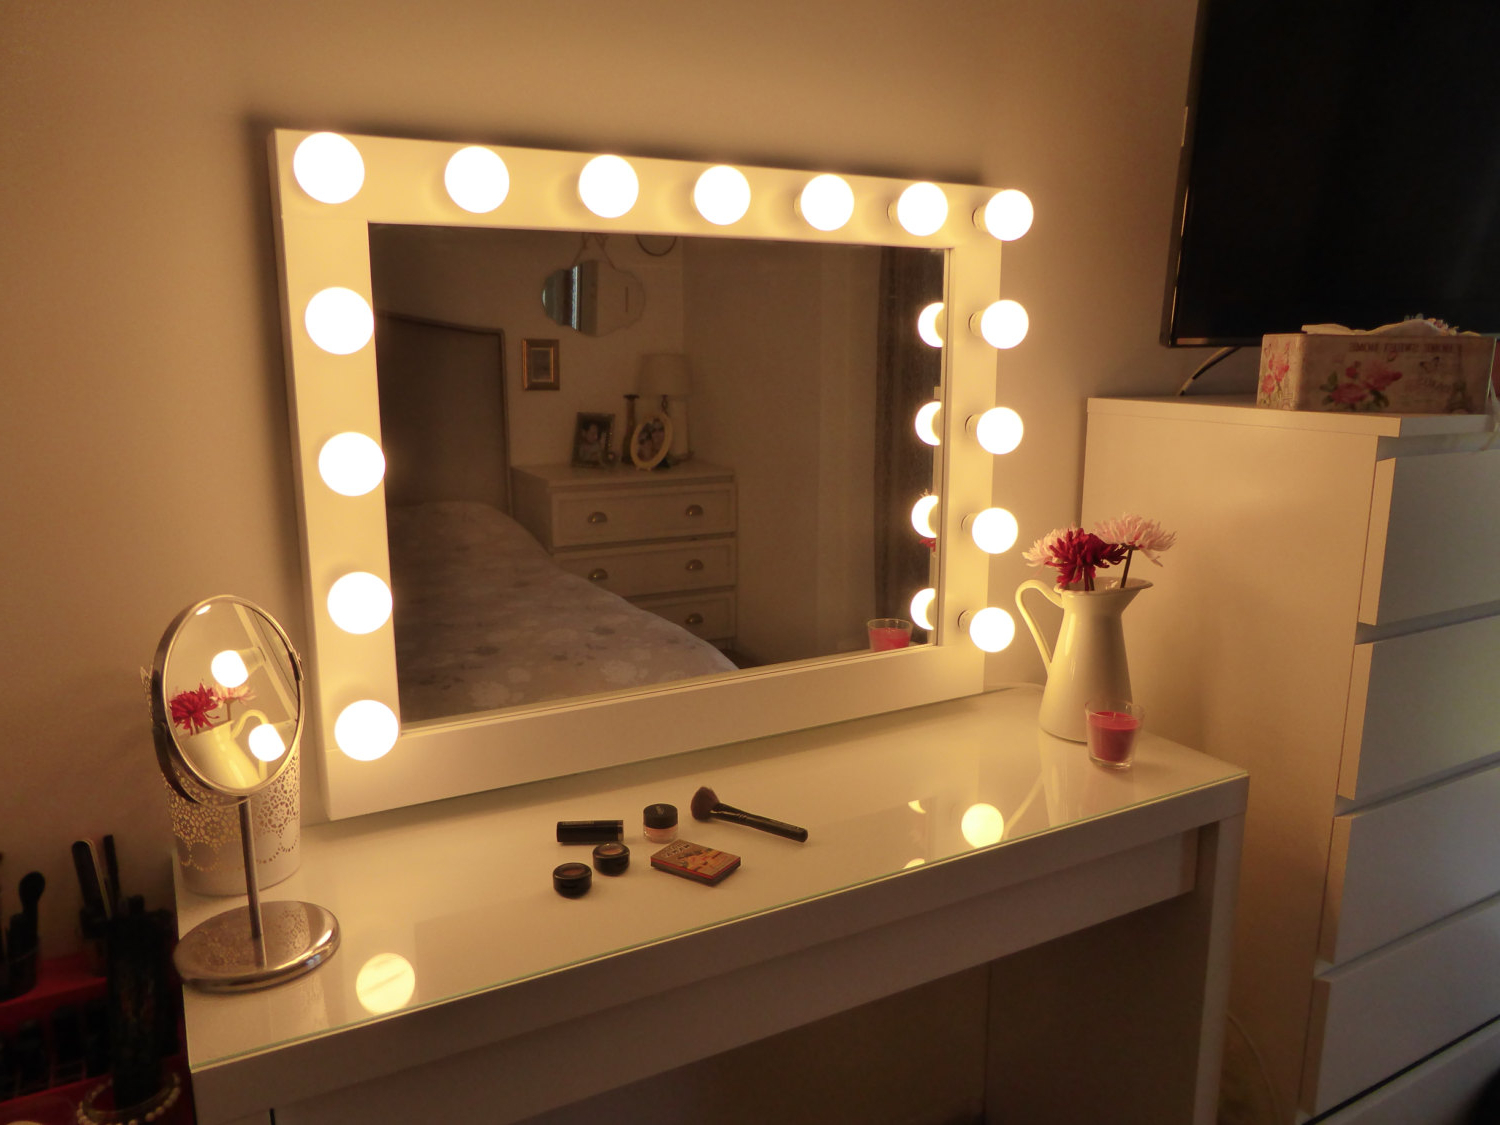 Light Up Wall Mirrors With 2019 Hollywood Lighted Vanity Mirror Large Makeup Mirror With Lights Wall Hanging/free Standing Perfect For Ikea Malm Vanity Bulbs Not Included (View 8 of 20)